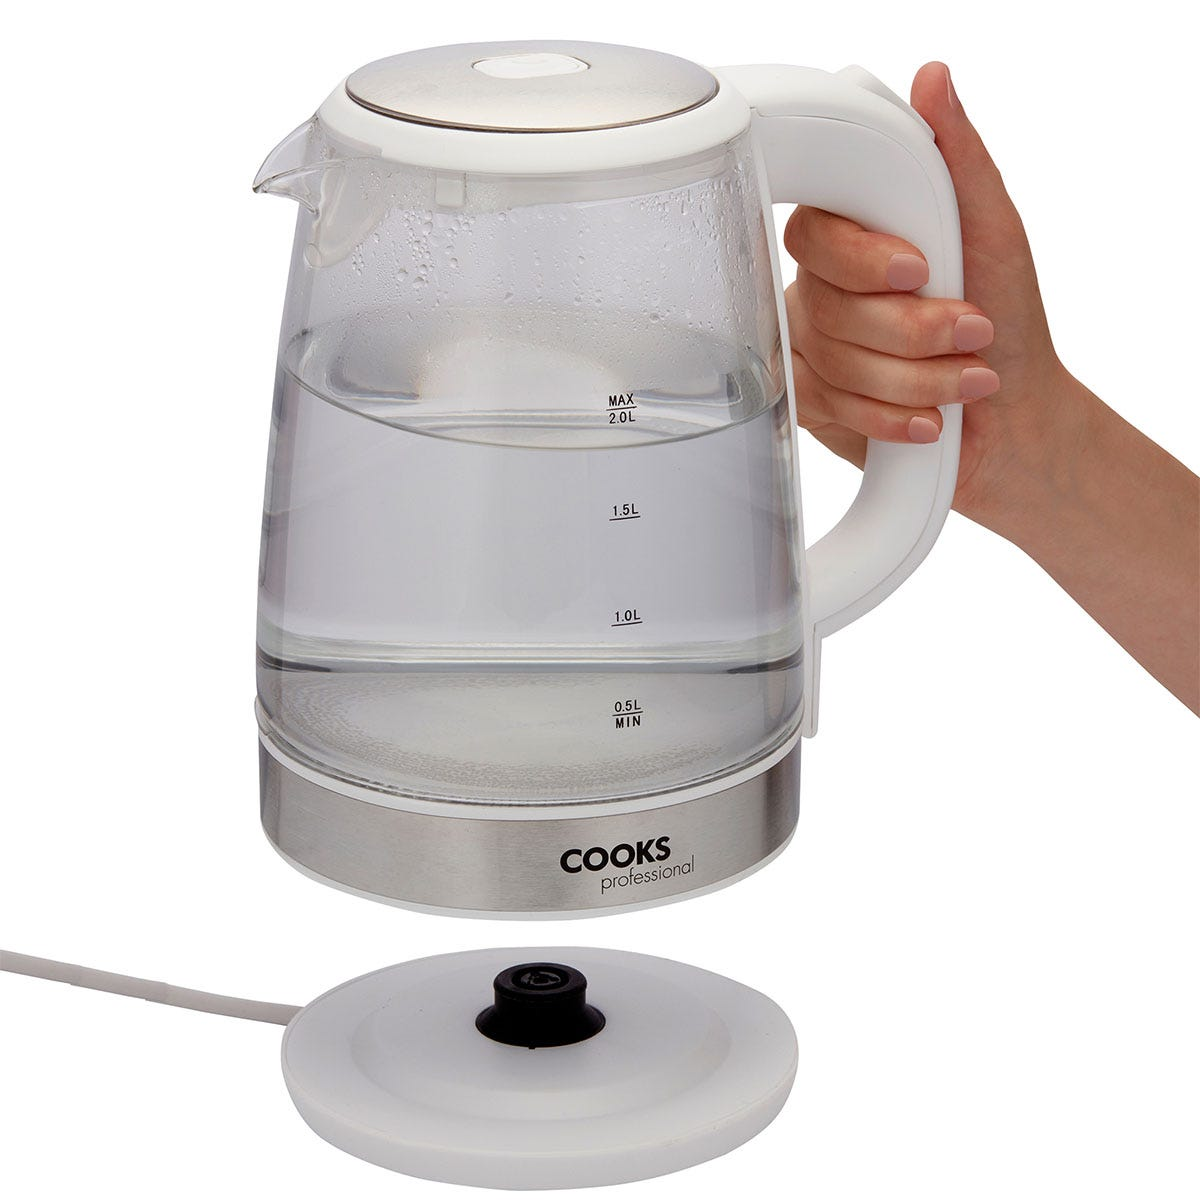 Cooks Professional G3143 Cordless 2200W 2L Glass Kettle - White